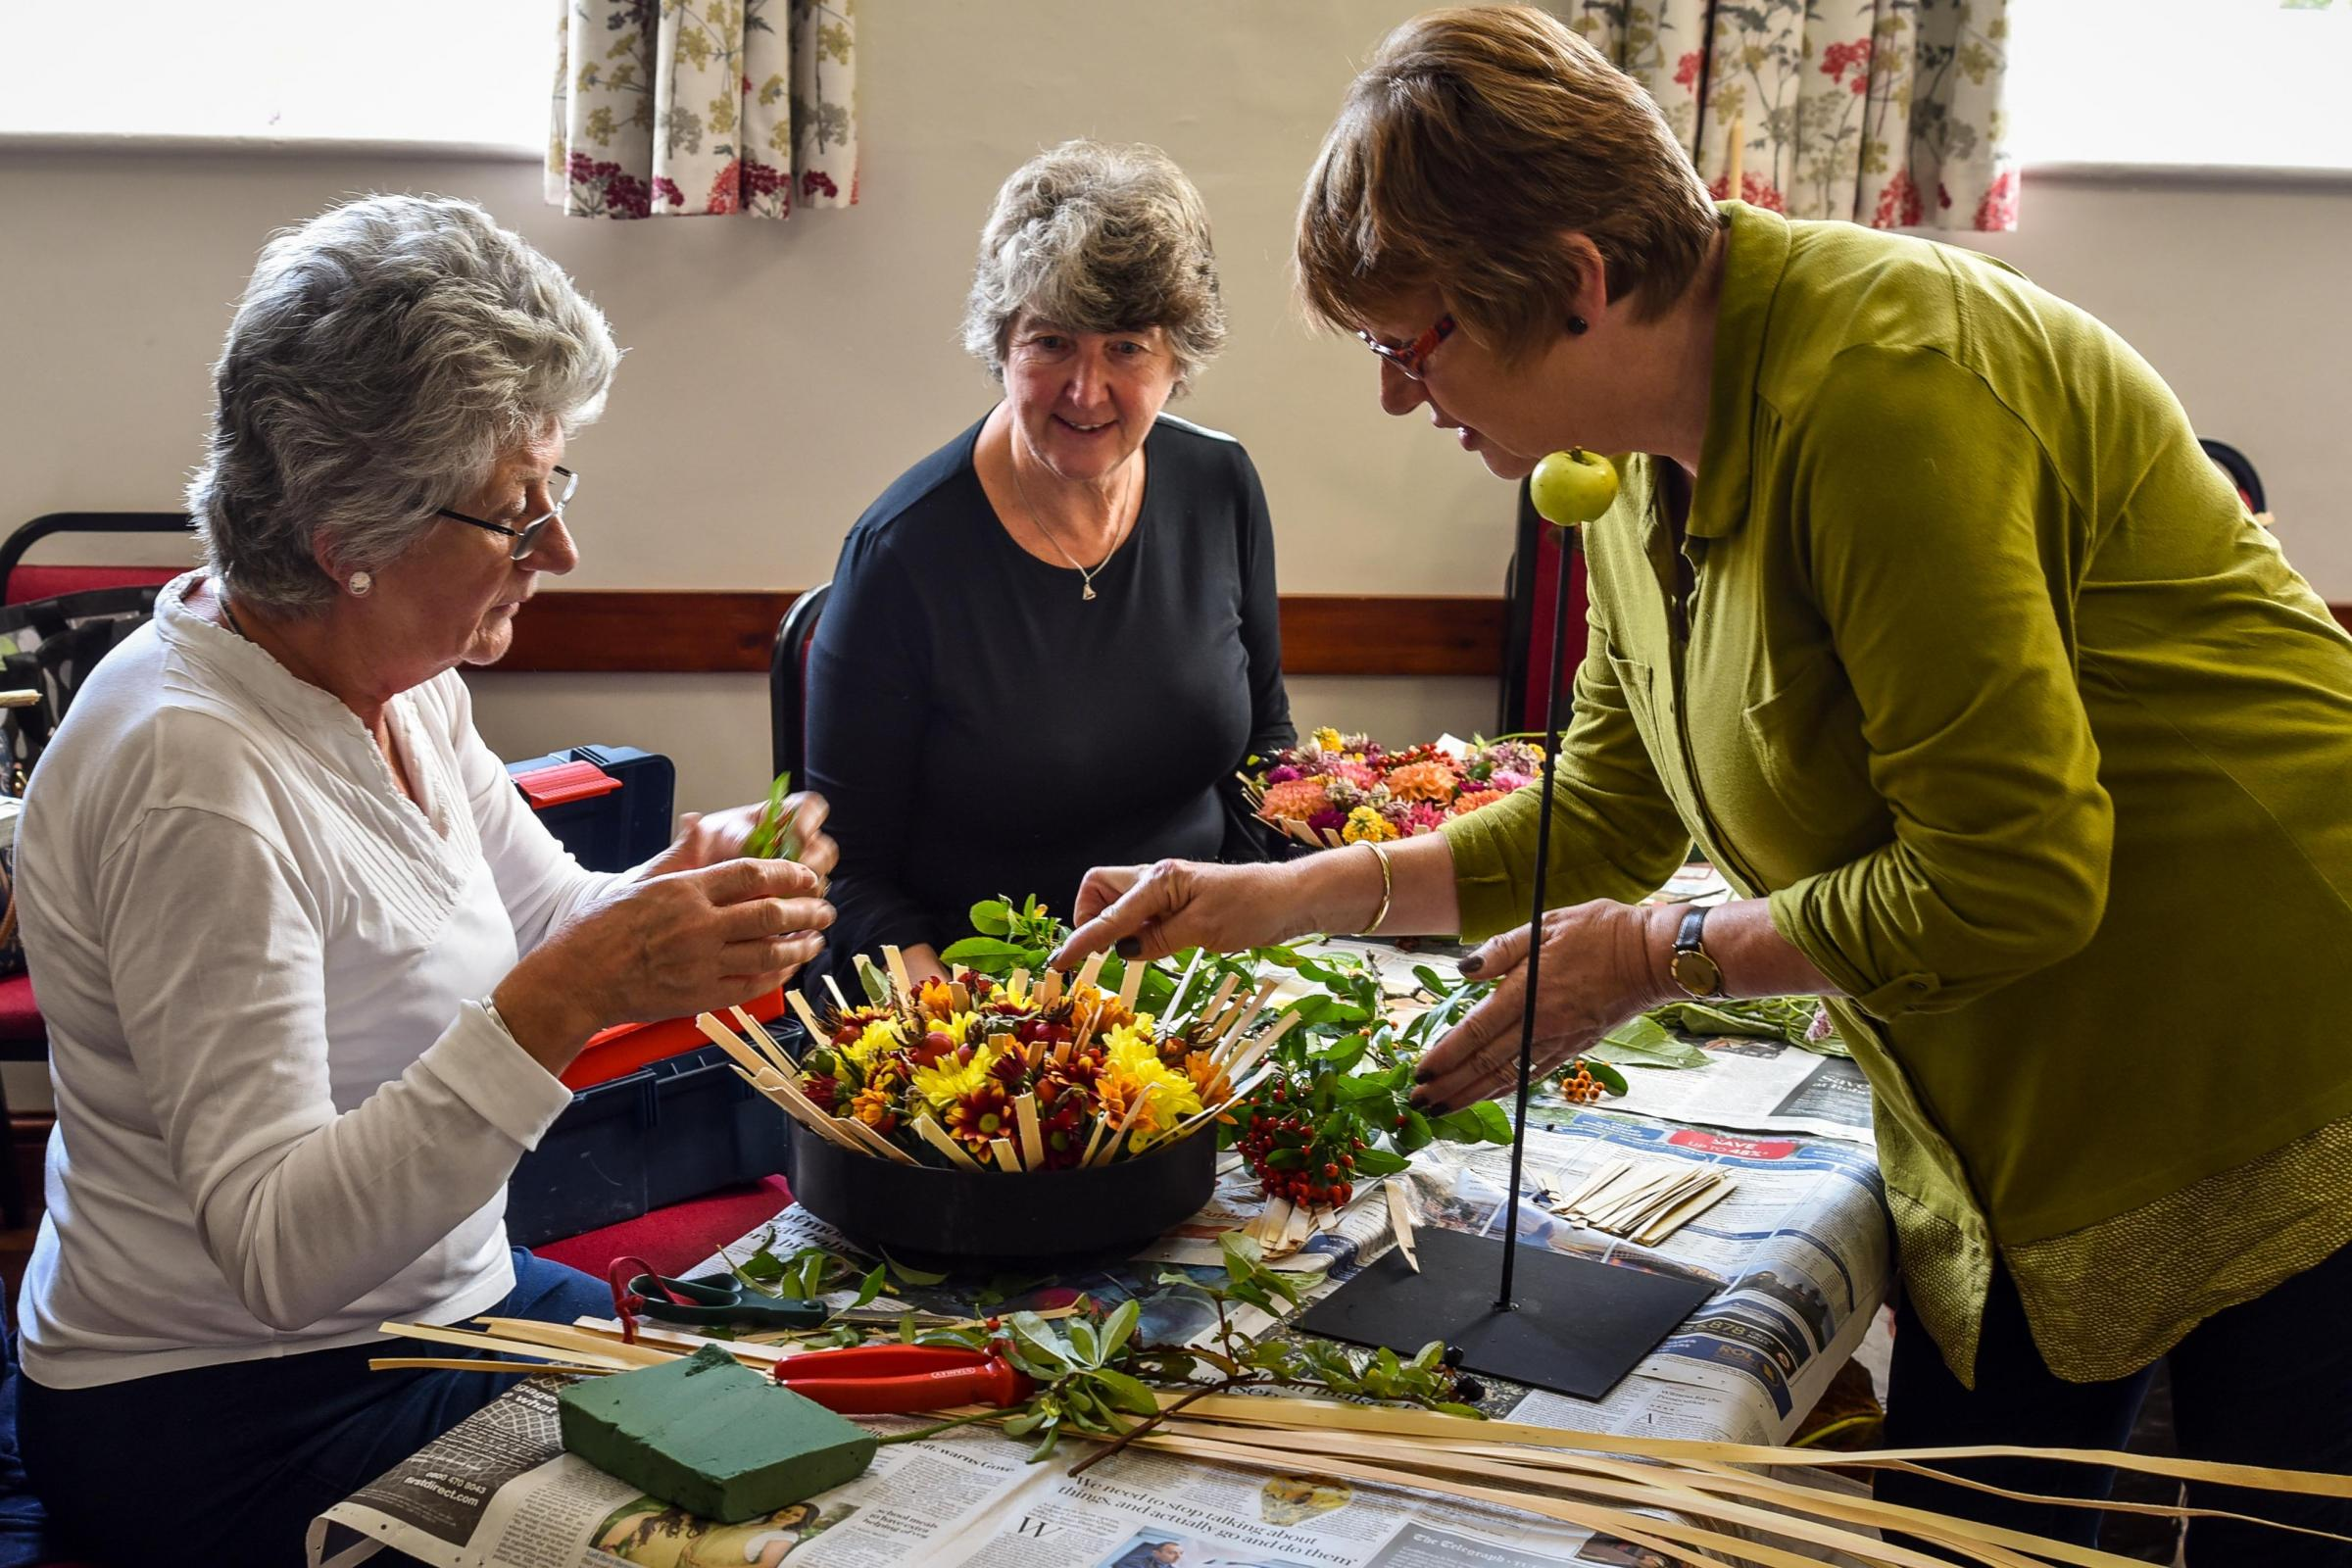 National floral designer Angela Turner (right) working with Liz Harris and Sharon Ecob at Bradford on Avon & District Flower Club's workshop and demonstration at Holt Village Hall on Saturday. Photo www.gphillipsphotography.com GP1061.